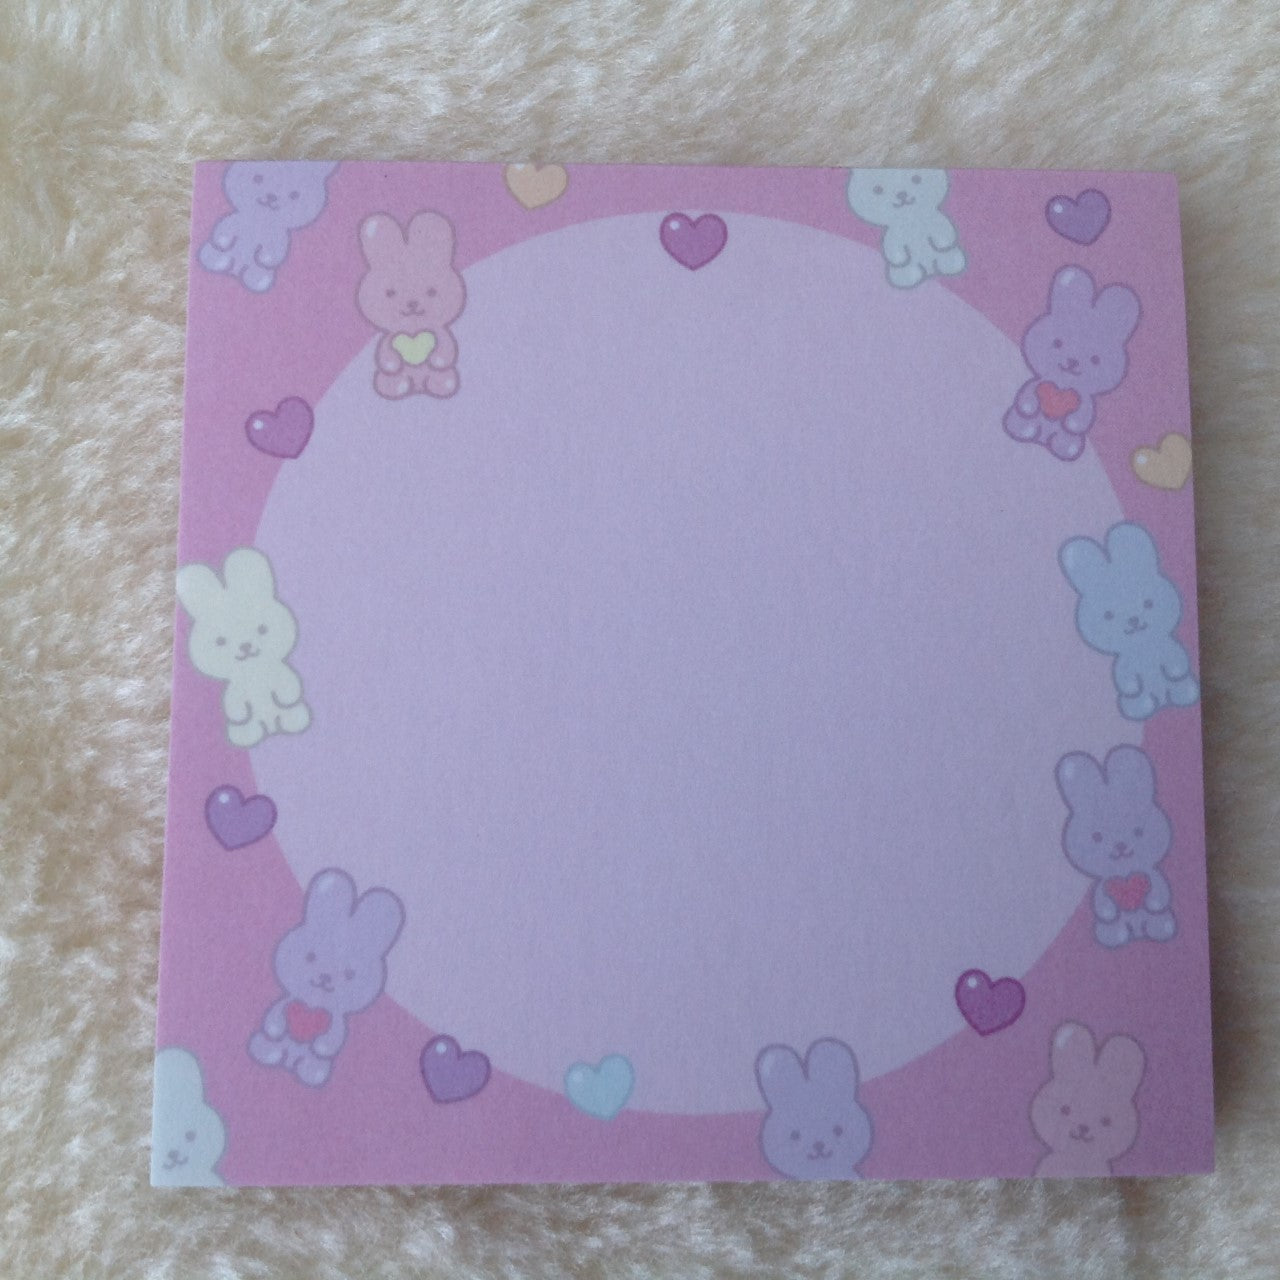 Bunny Rabbit Hearts Sticky Note Pad